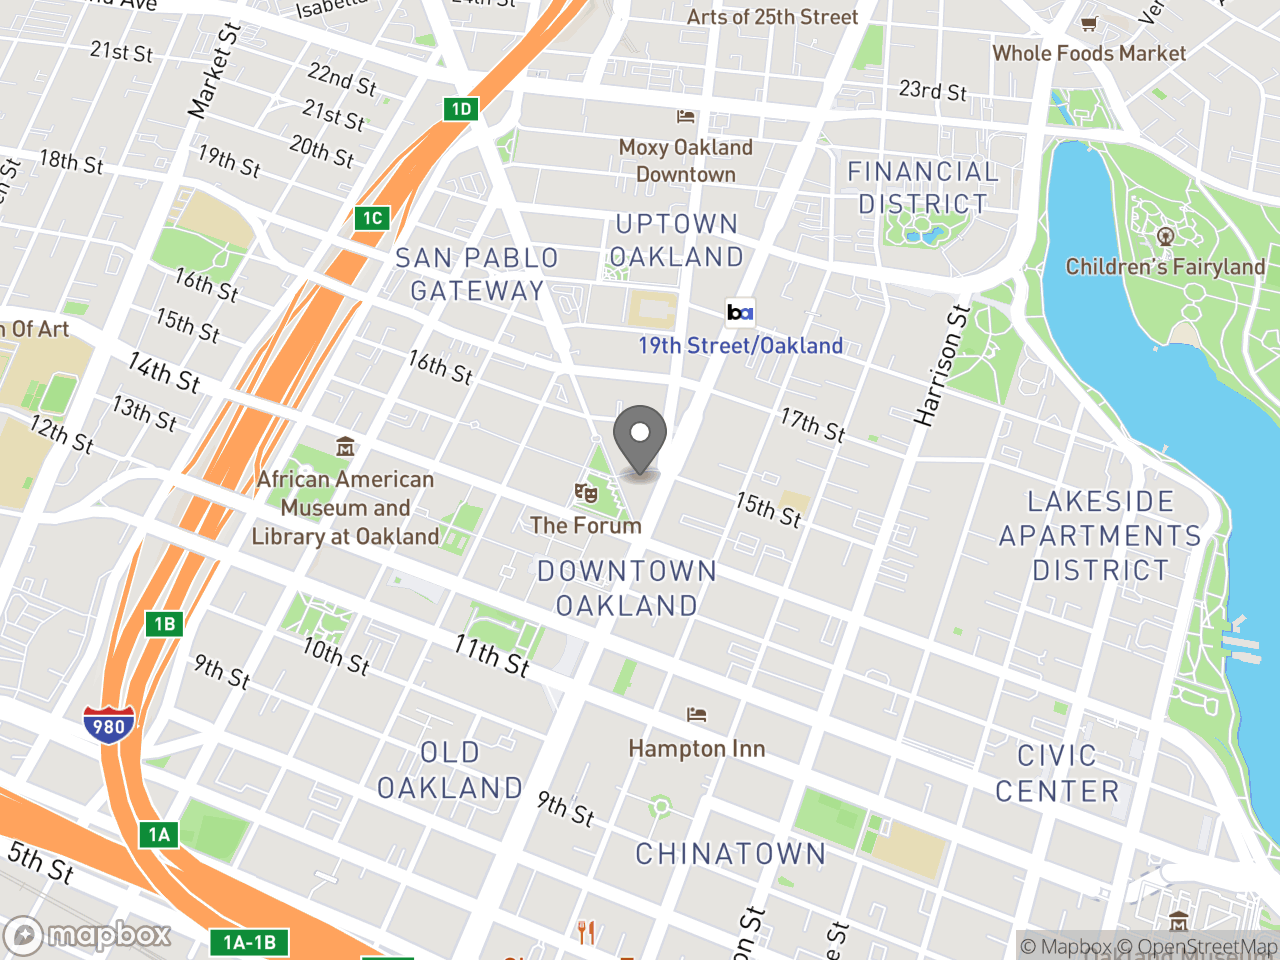 Map location for Fire, located at 150 Frank H Ogawa Plaza in Oakland, CA 94612